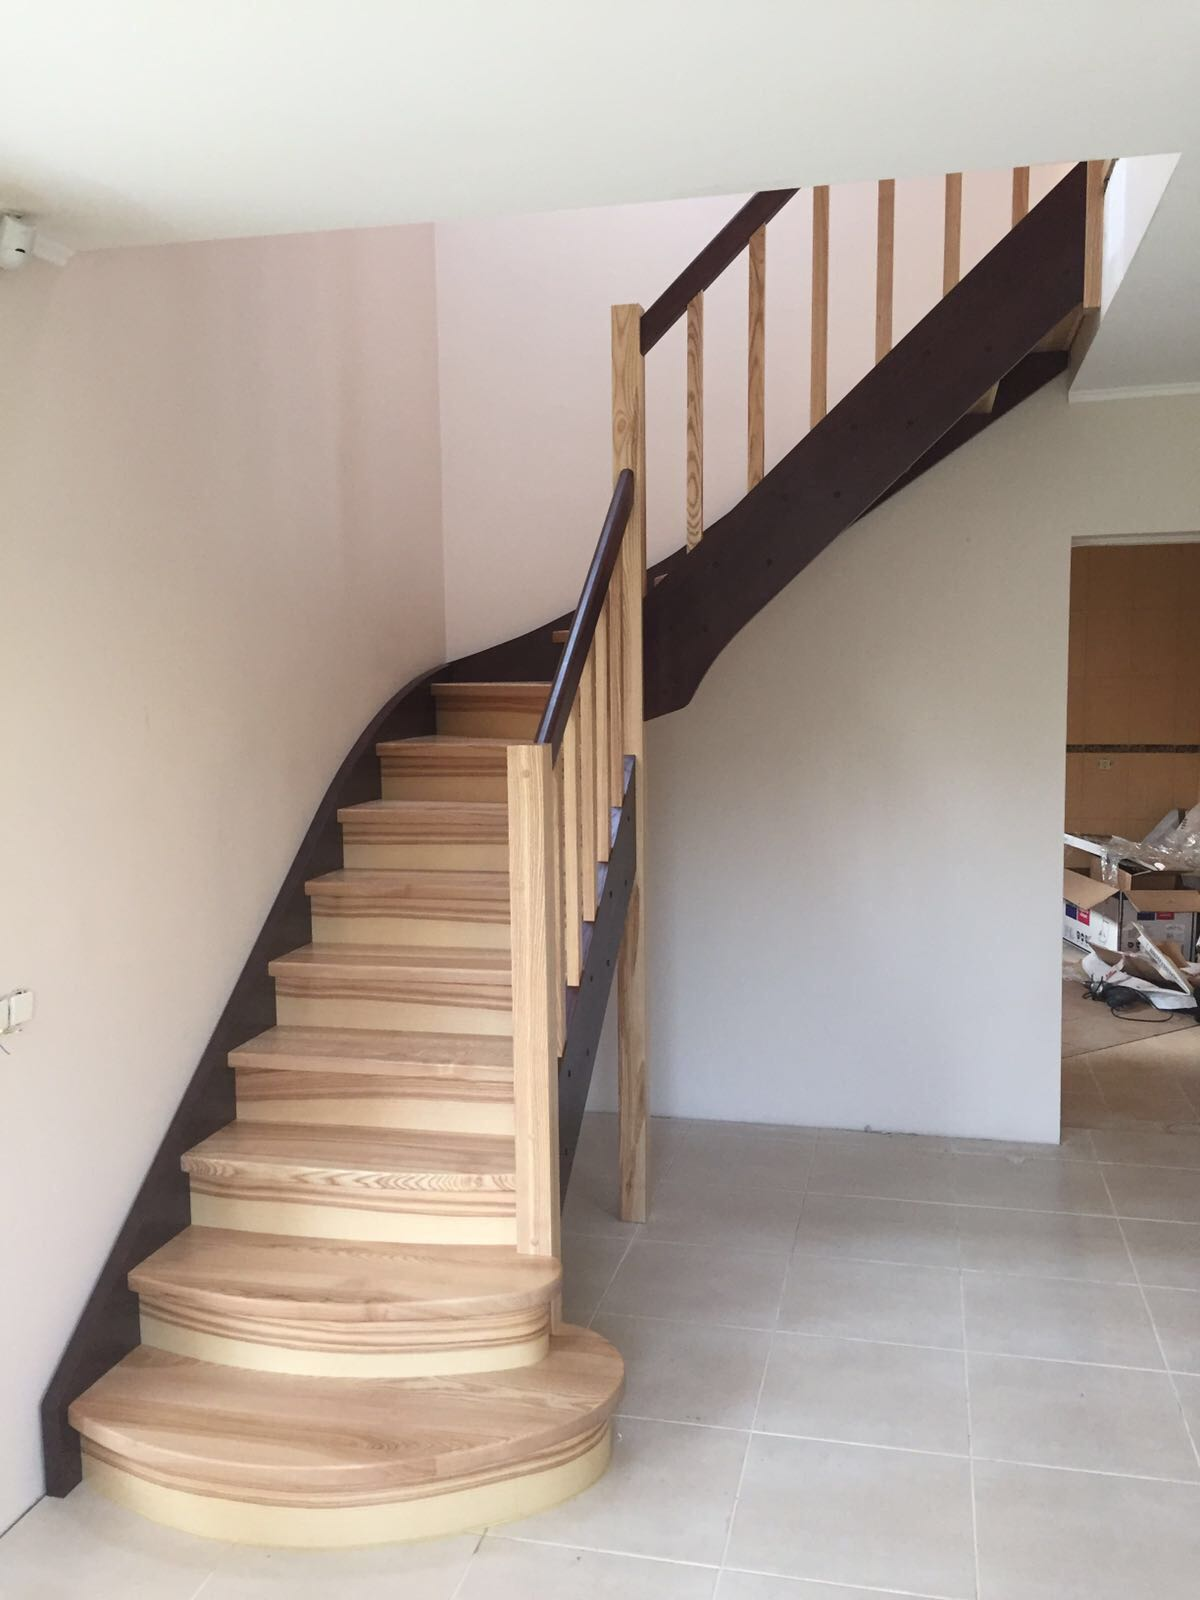 Delicieux Stairs We Produce For Our Clients. We Offer Ready Made Stairs From Our  Designs, Or We Can Work With Your Specific Design Of Custom Built Stairs.